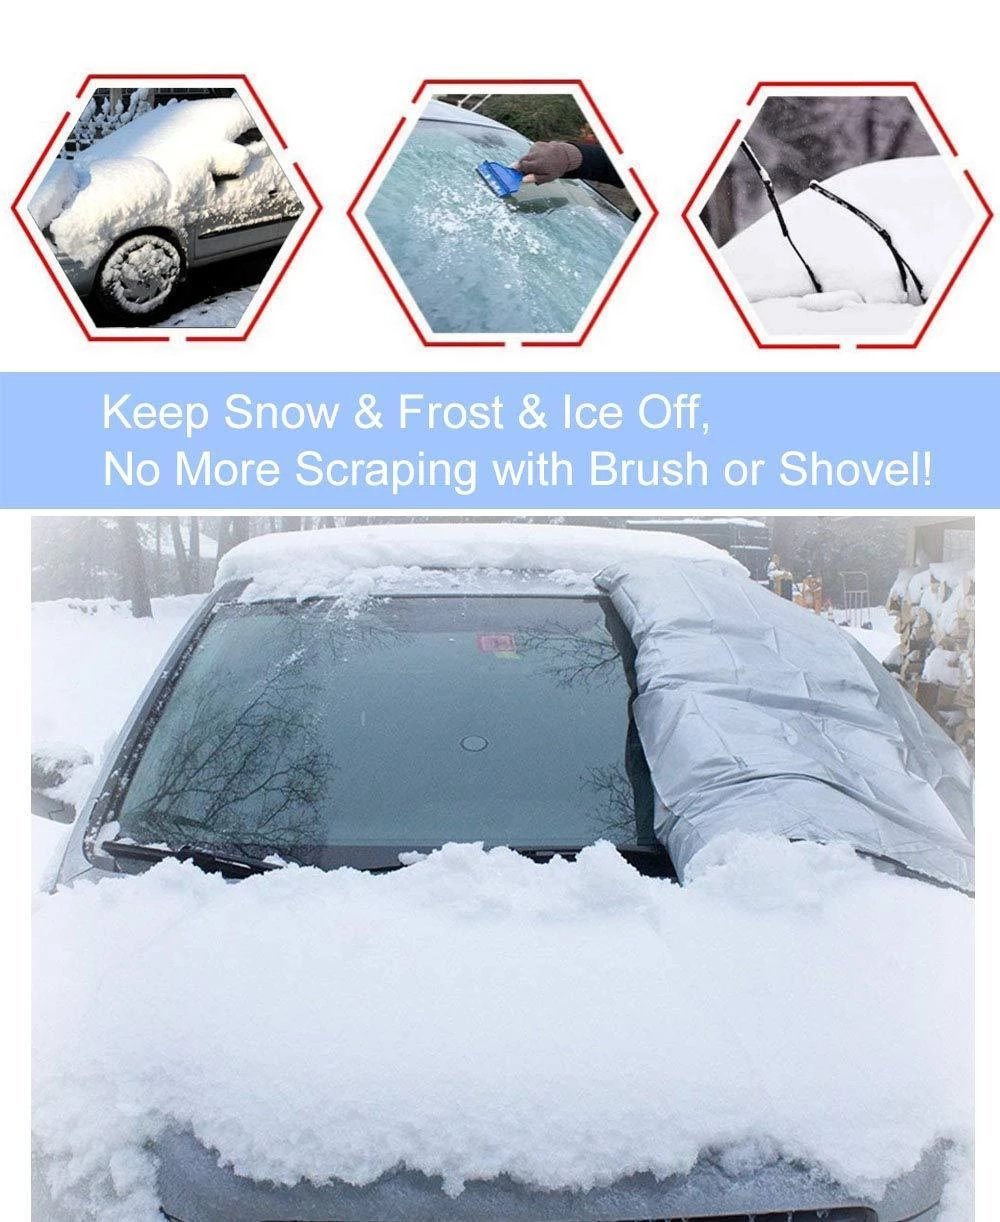 H ONLY 50% OFF TODAY -FREEDOM Full Protection Windshield Cover